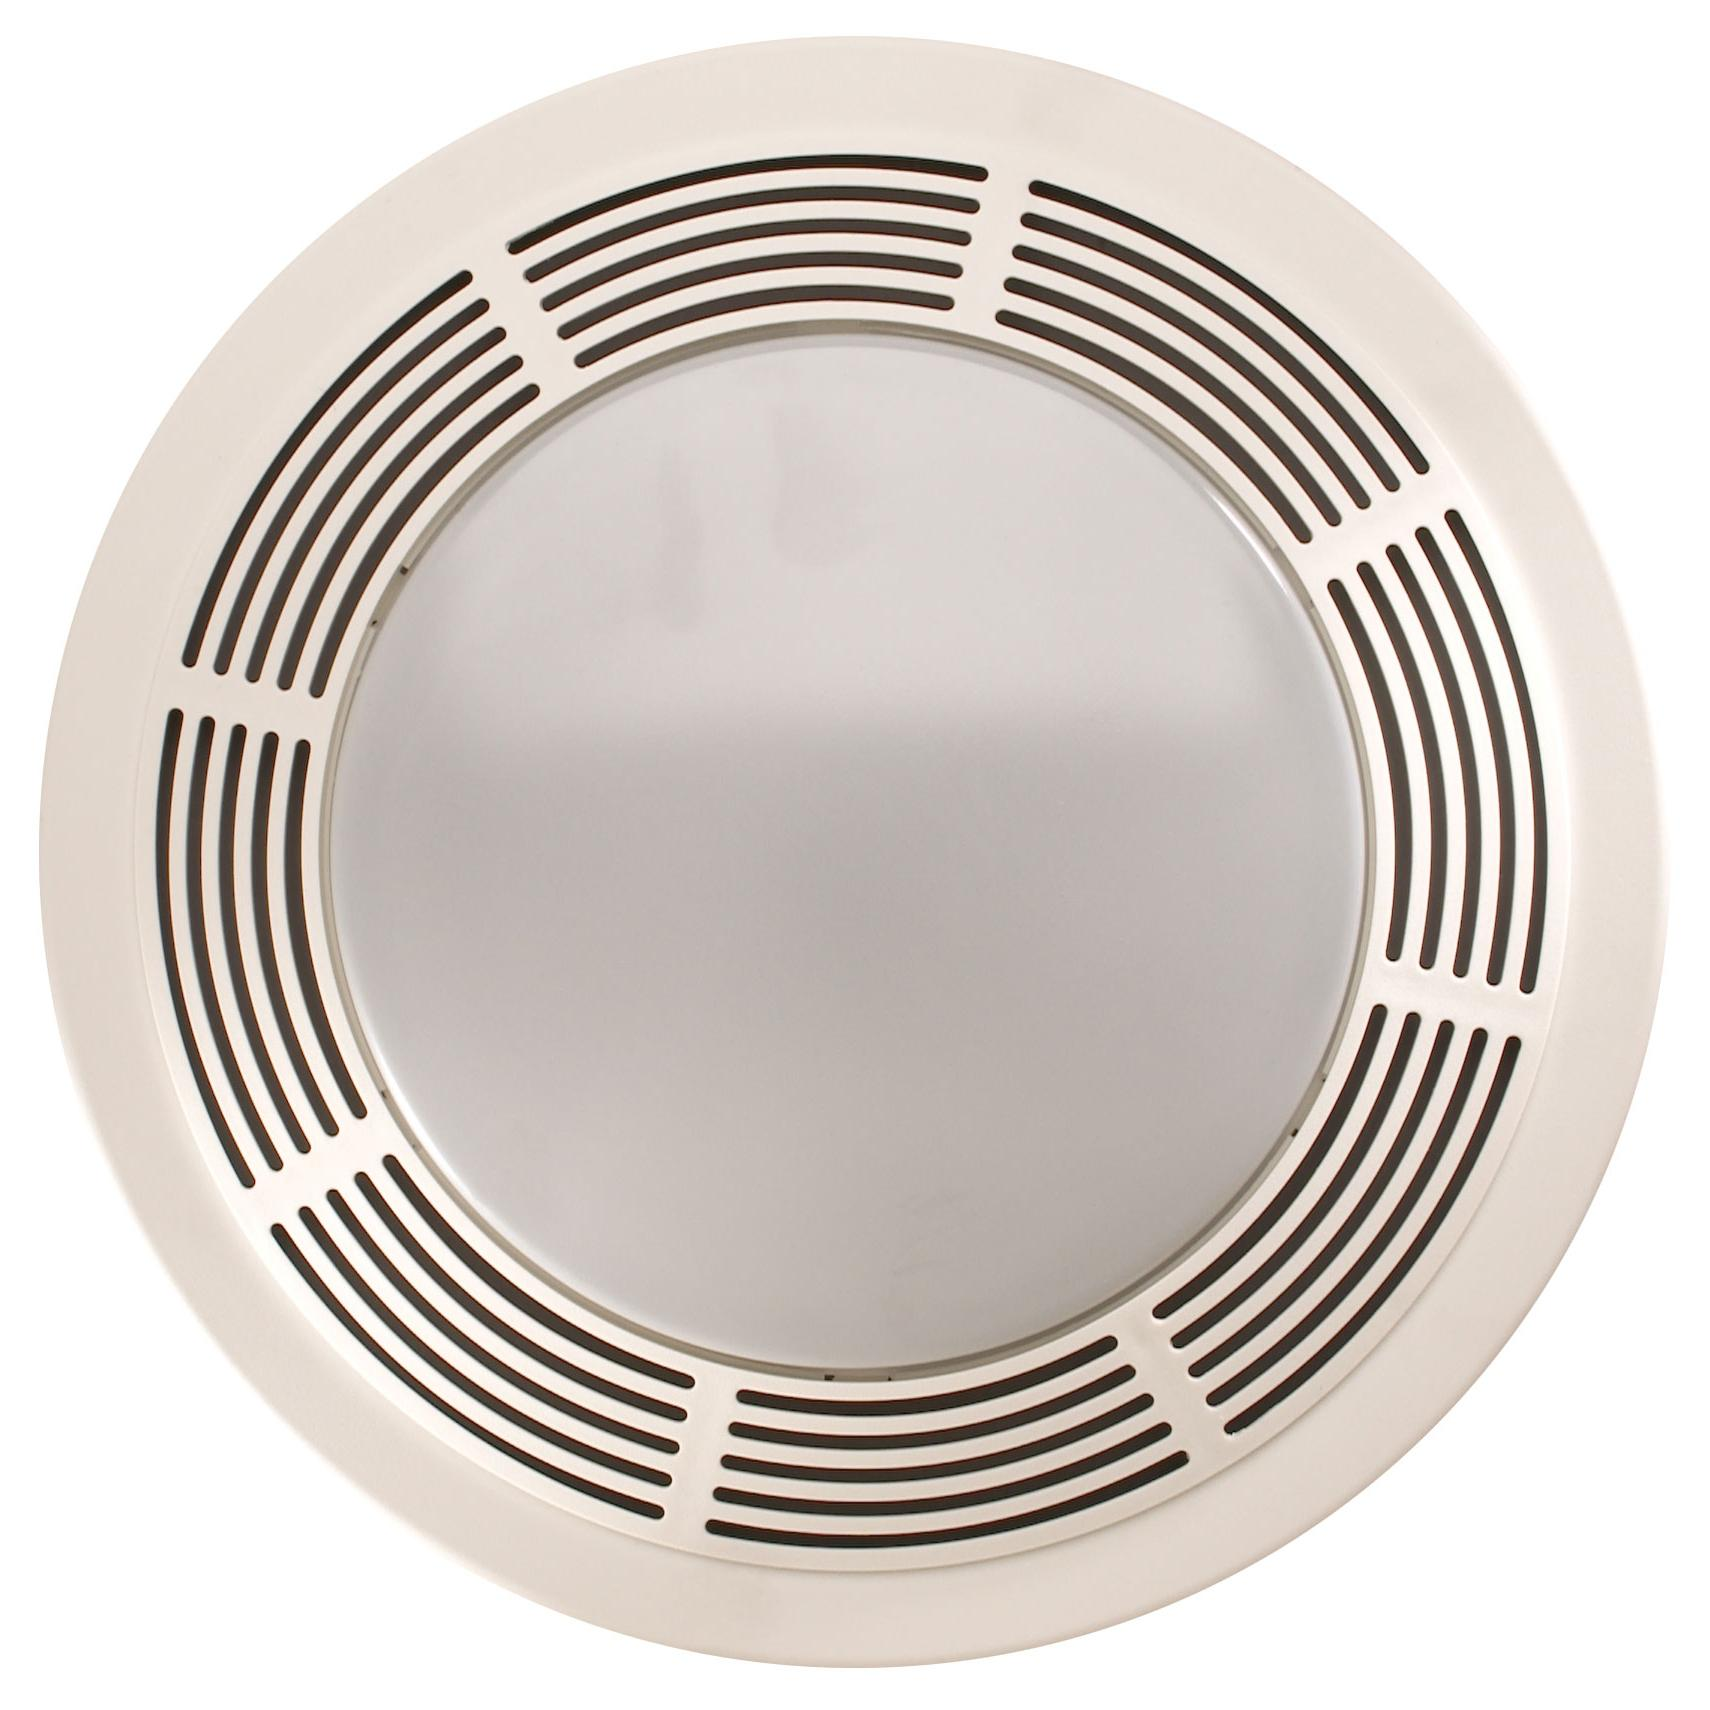 Broan 751 fan and light with round white grille and glass lens 100 broan 750 fanlightnight light round white plastic grille with glass aloadofball Choice Image